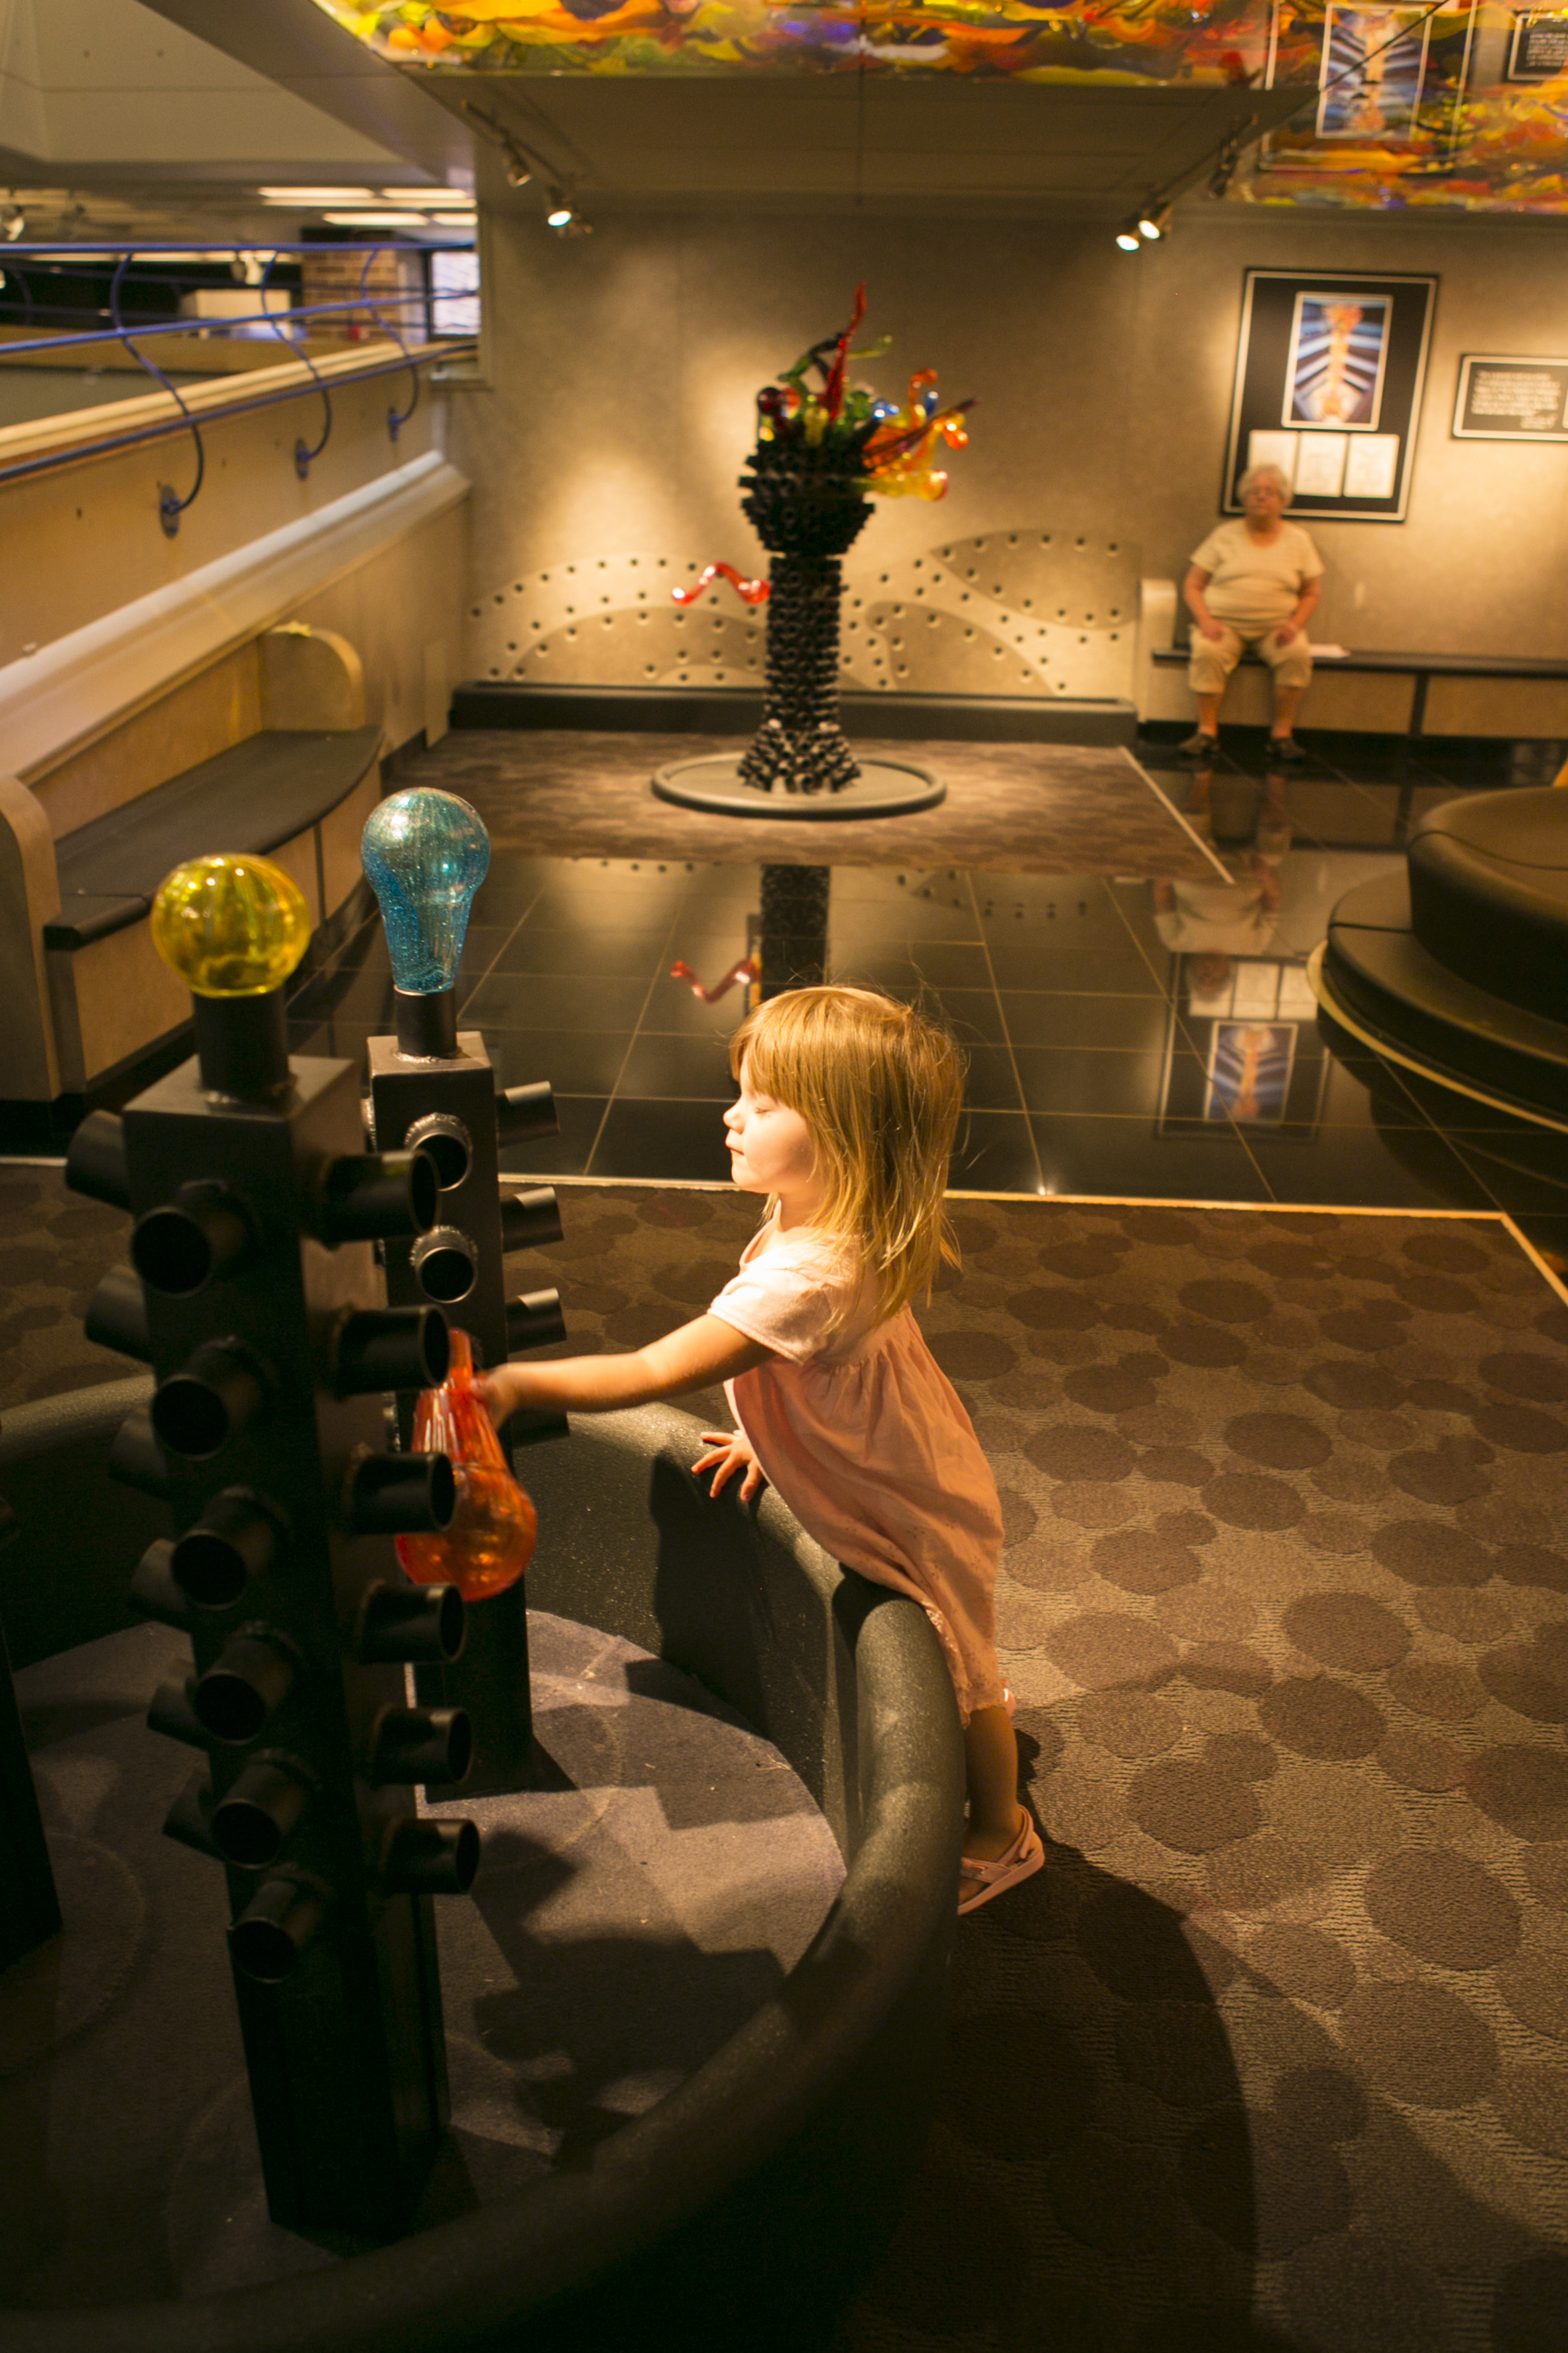 Indianpolis_Childrens_Museum-001_59